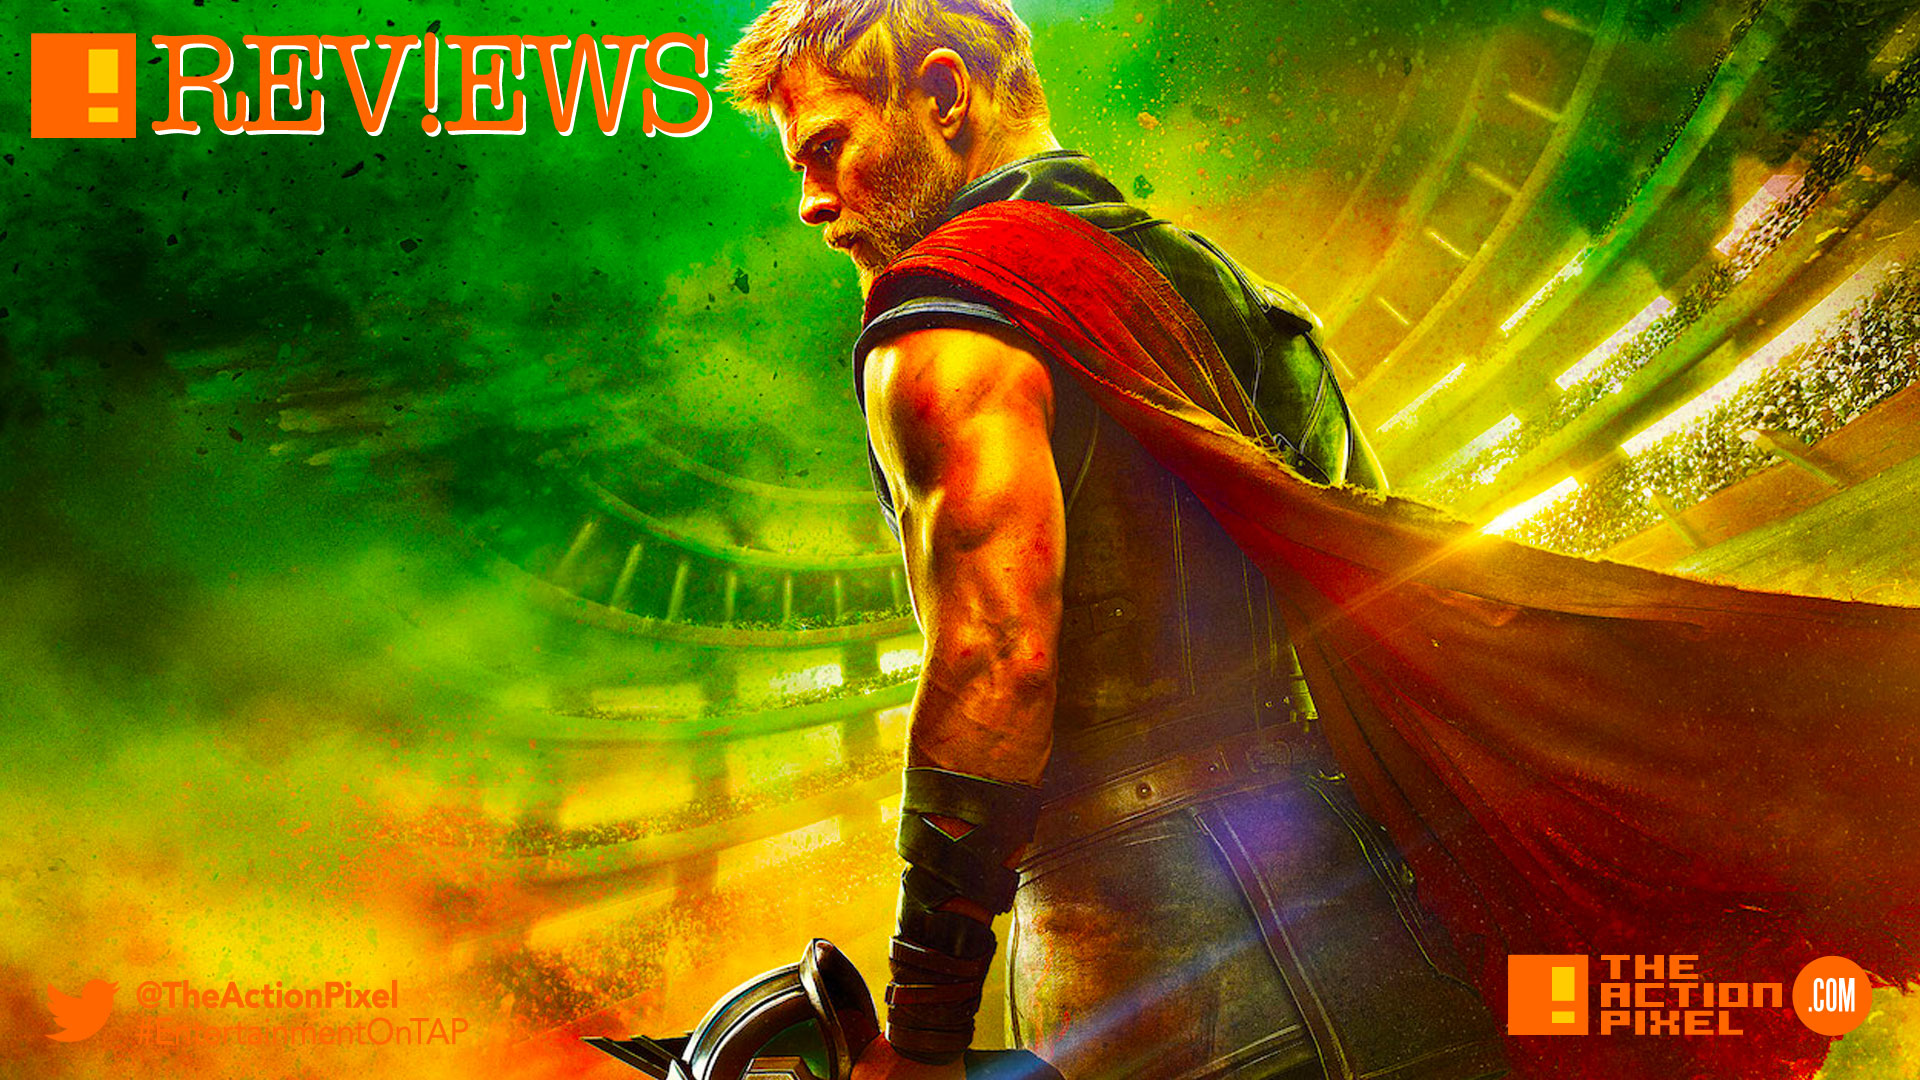 hela, thor ragnarok, hulk, entertainment on tap, the action pixel, marvel comics, mark ruffalo, thor, avengers 3, infinity war, doctor strange, marvel studios, tv spot, mjolnir,review, tap reviews, film review, movie review,cate blanchett,tessa thompson , valkyrie